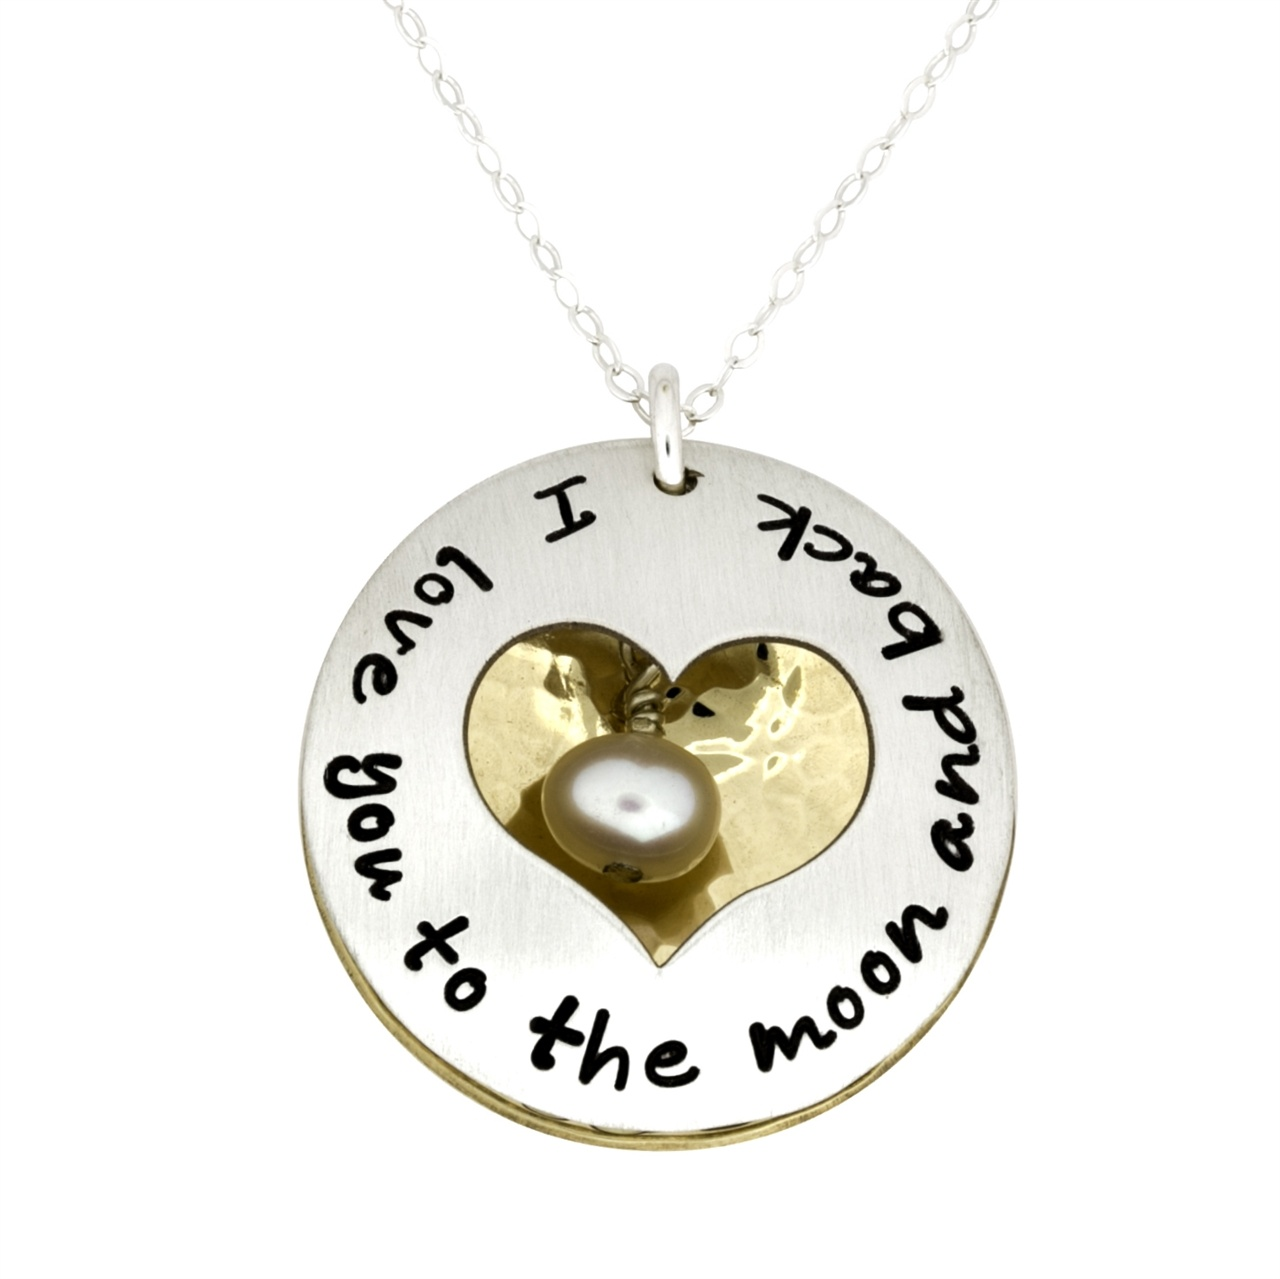 Engraved Heart Necklaces For Her